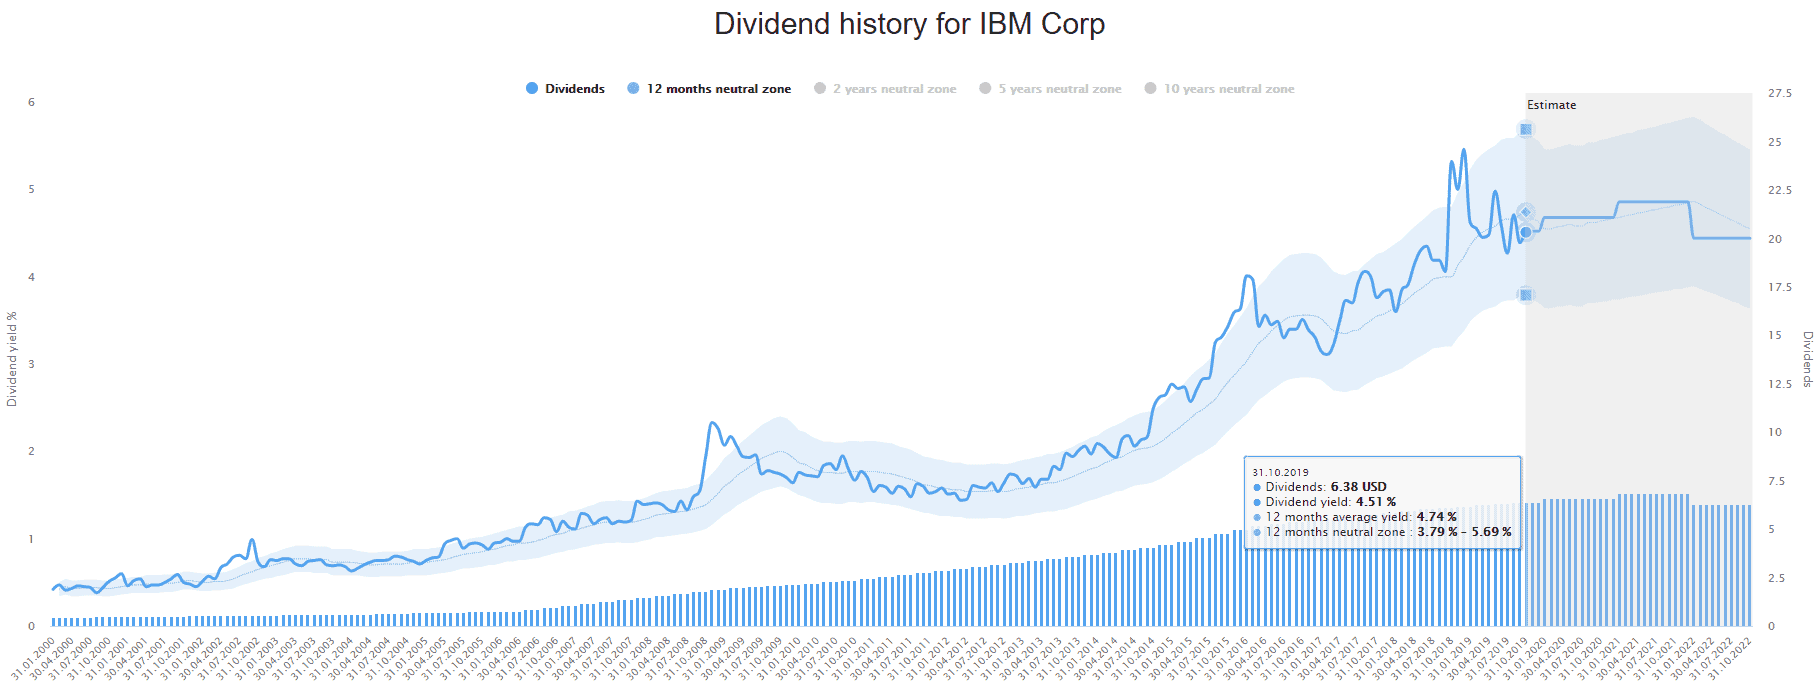 Historic dividend yield of IBM